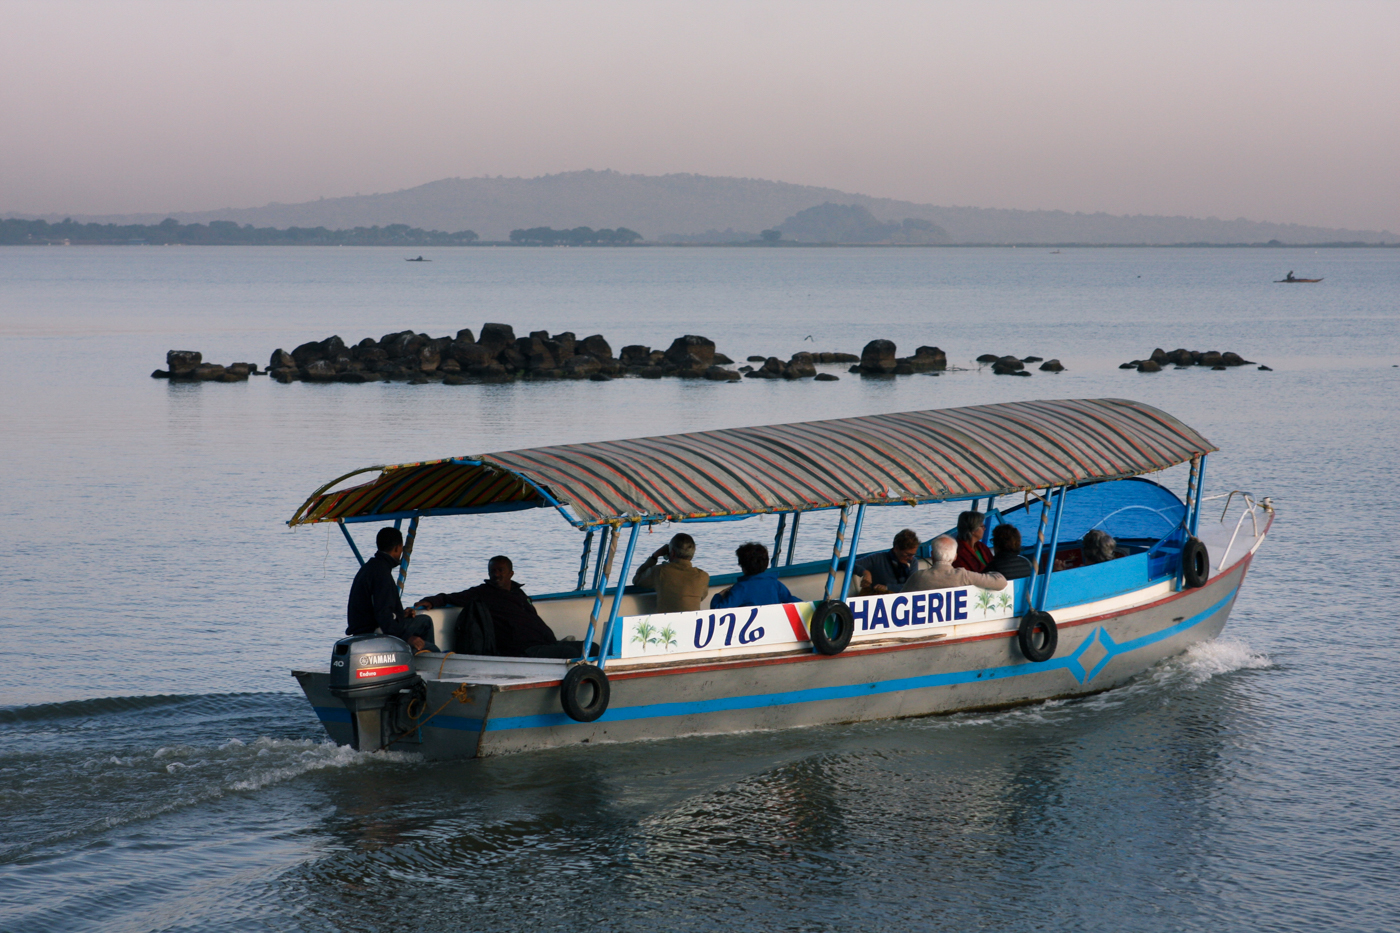 Tourists on a boat on Lake Tana set off from Bahir Dar, the capital of the Amhara region in Ethiopia